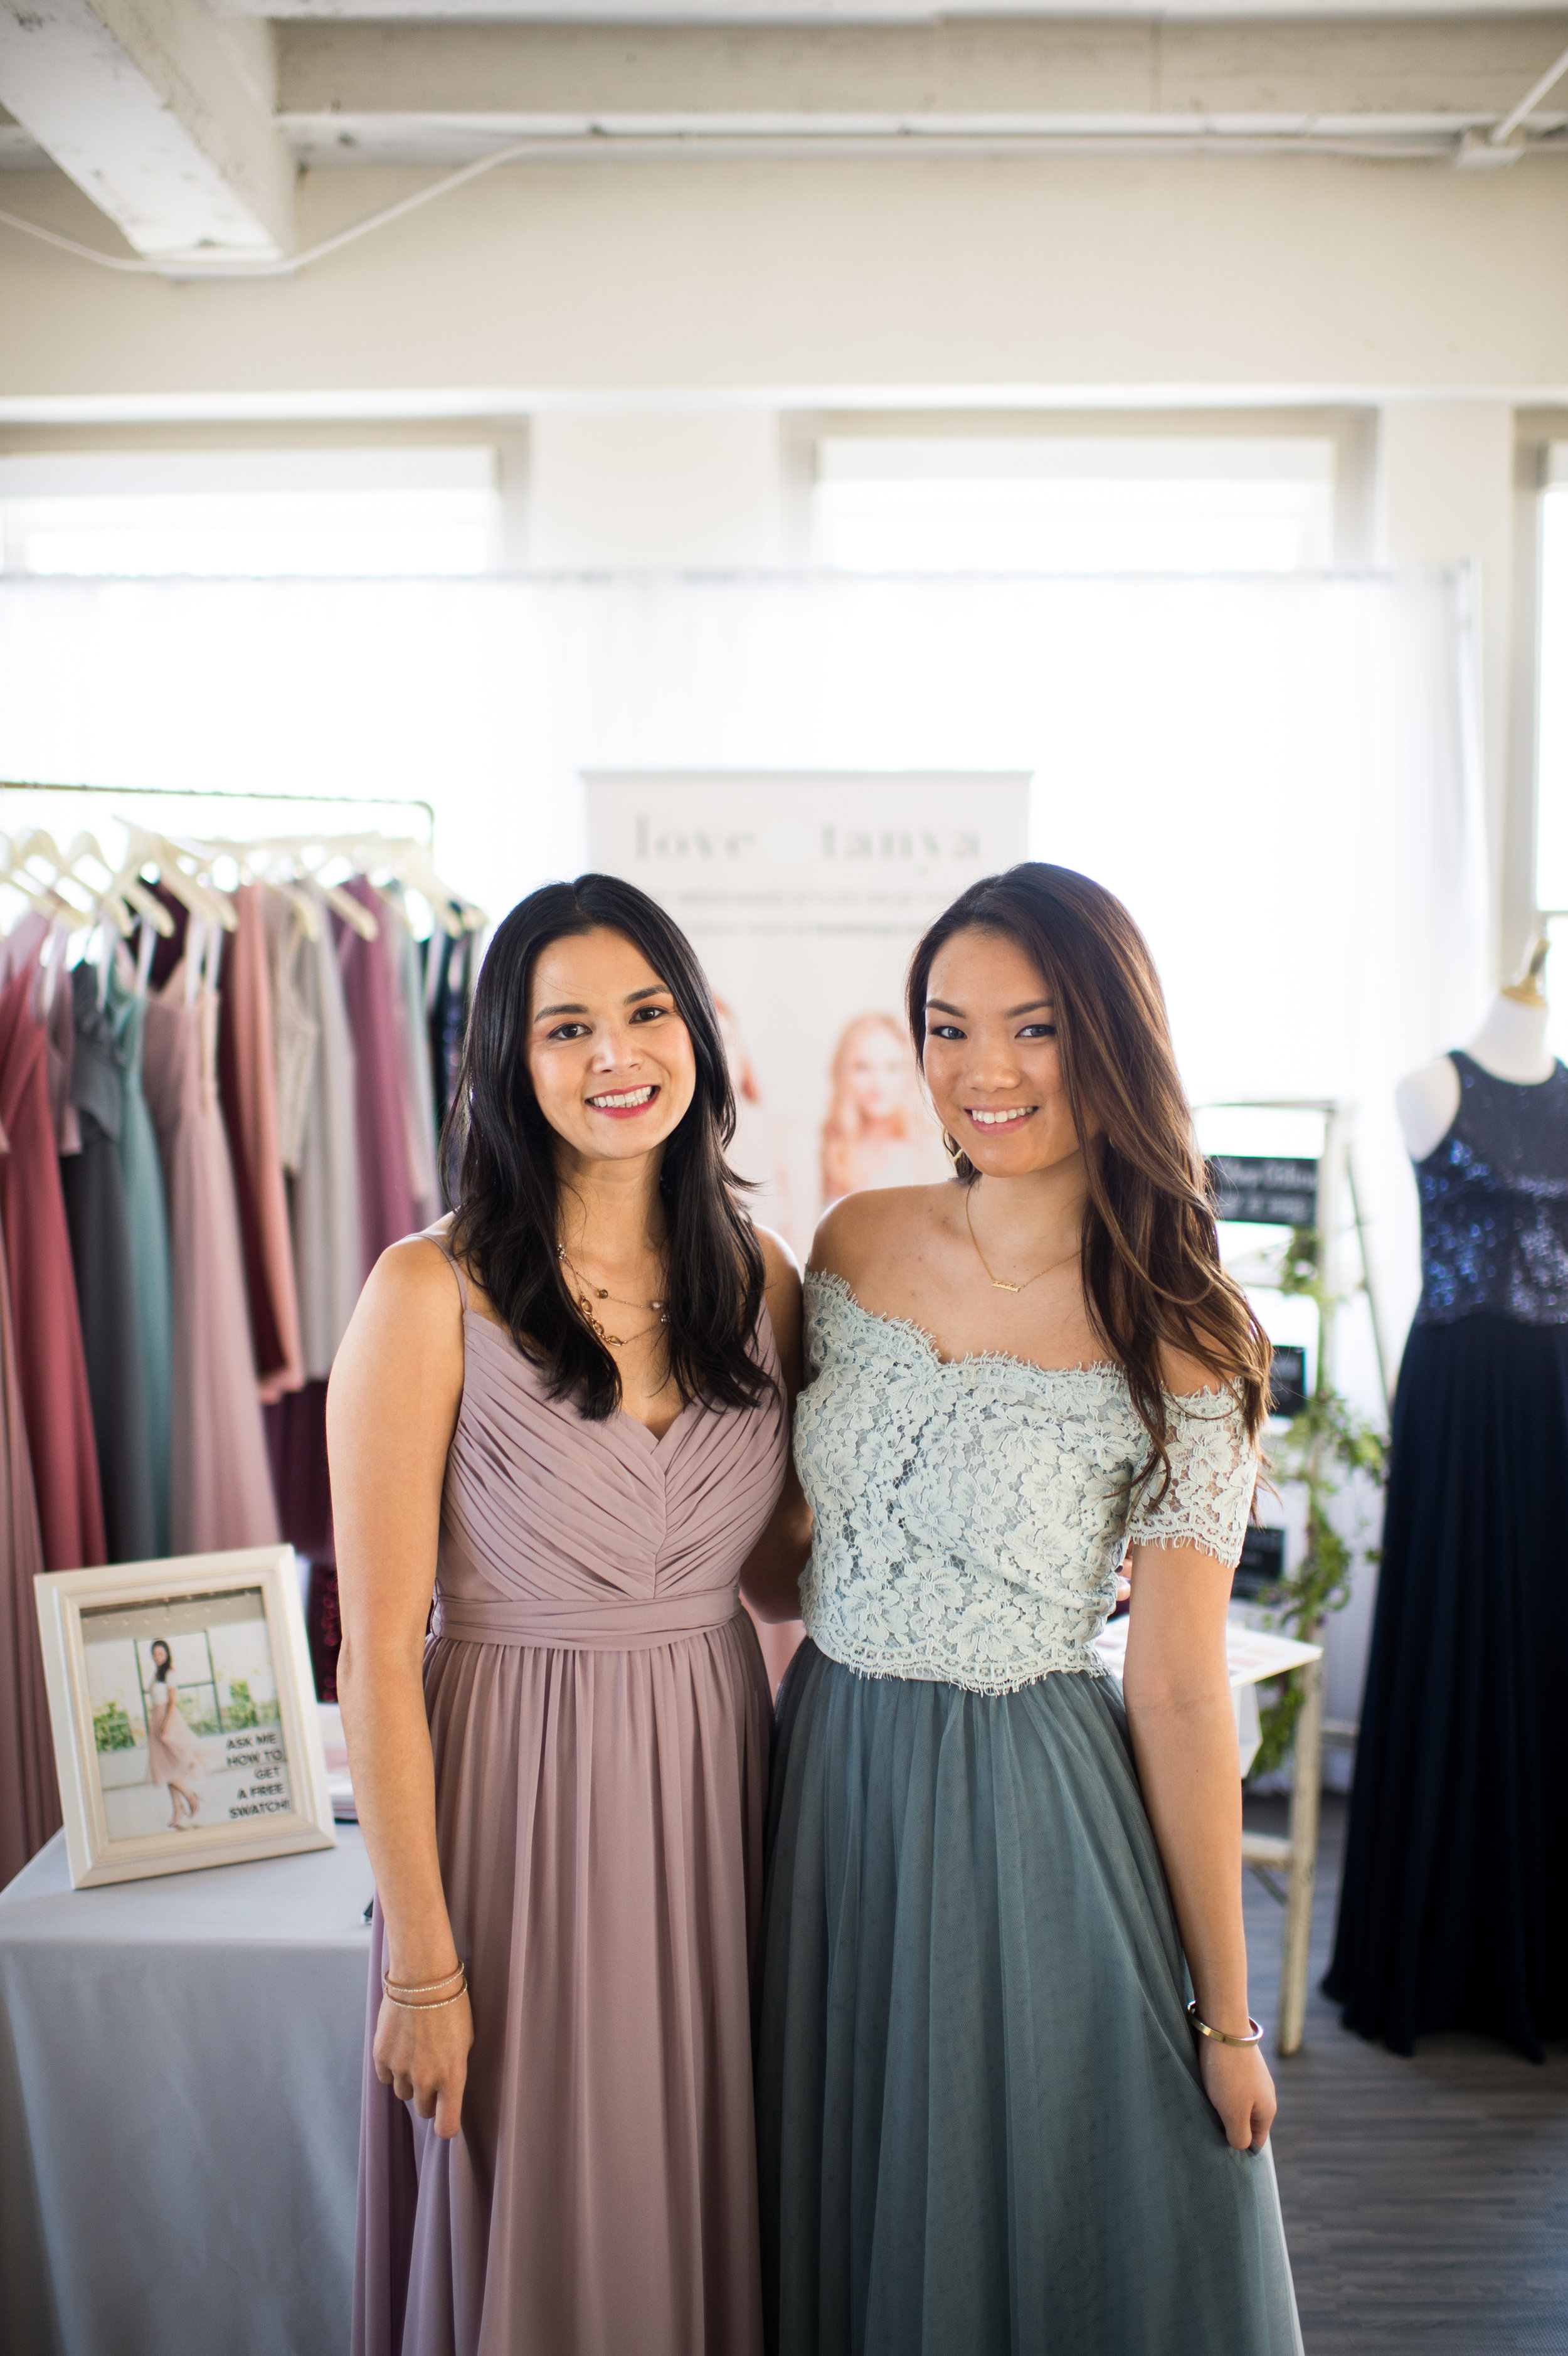 Love & Tanya came through with such an incredible selection of dresses perfect for any bridesmaid!